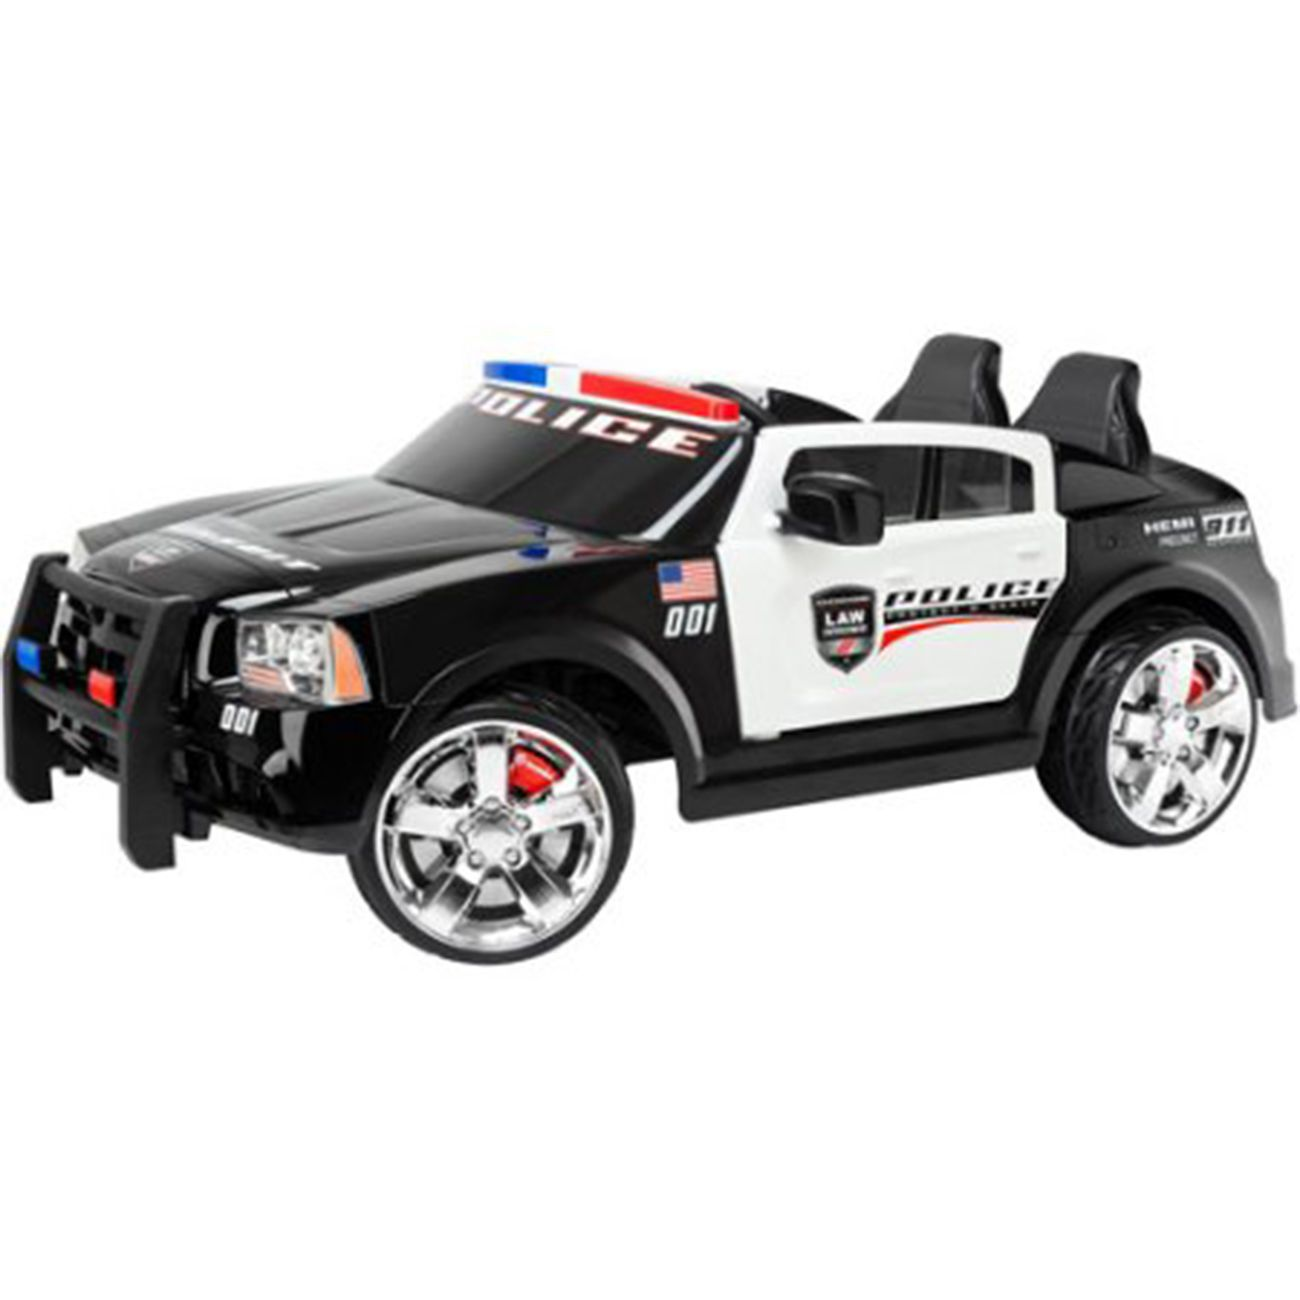 Lowrider car toys   Electric Cars  Stuff to buy  Pinterest